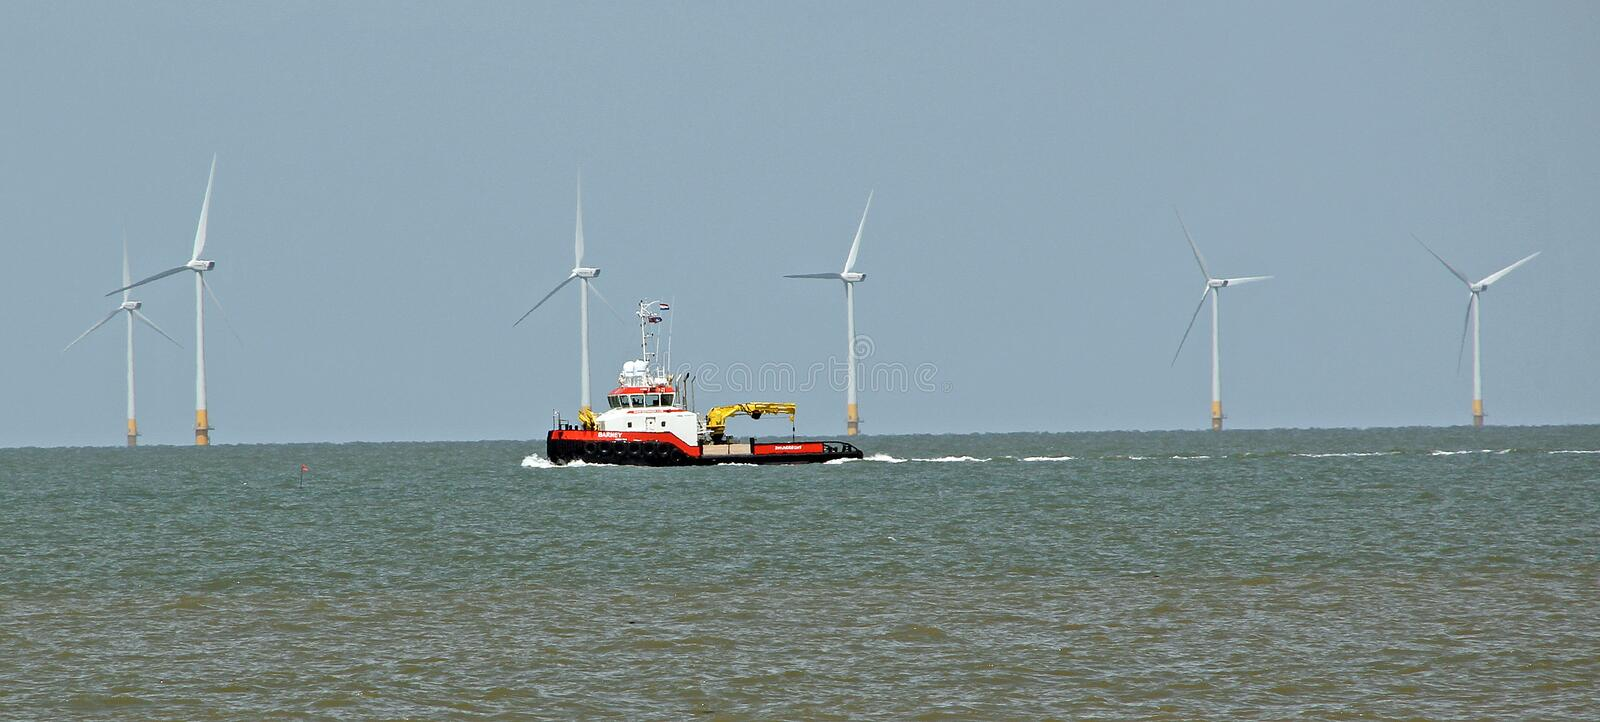 Offshore windfarm repairs. Photo of offshore windfarm repairs on the coast of whitstable in kent. photo taken 18th june 2015 and ideal for green energy,offshore royalty free stock image